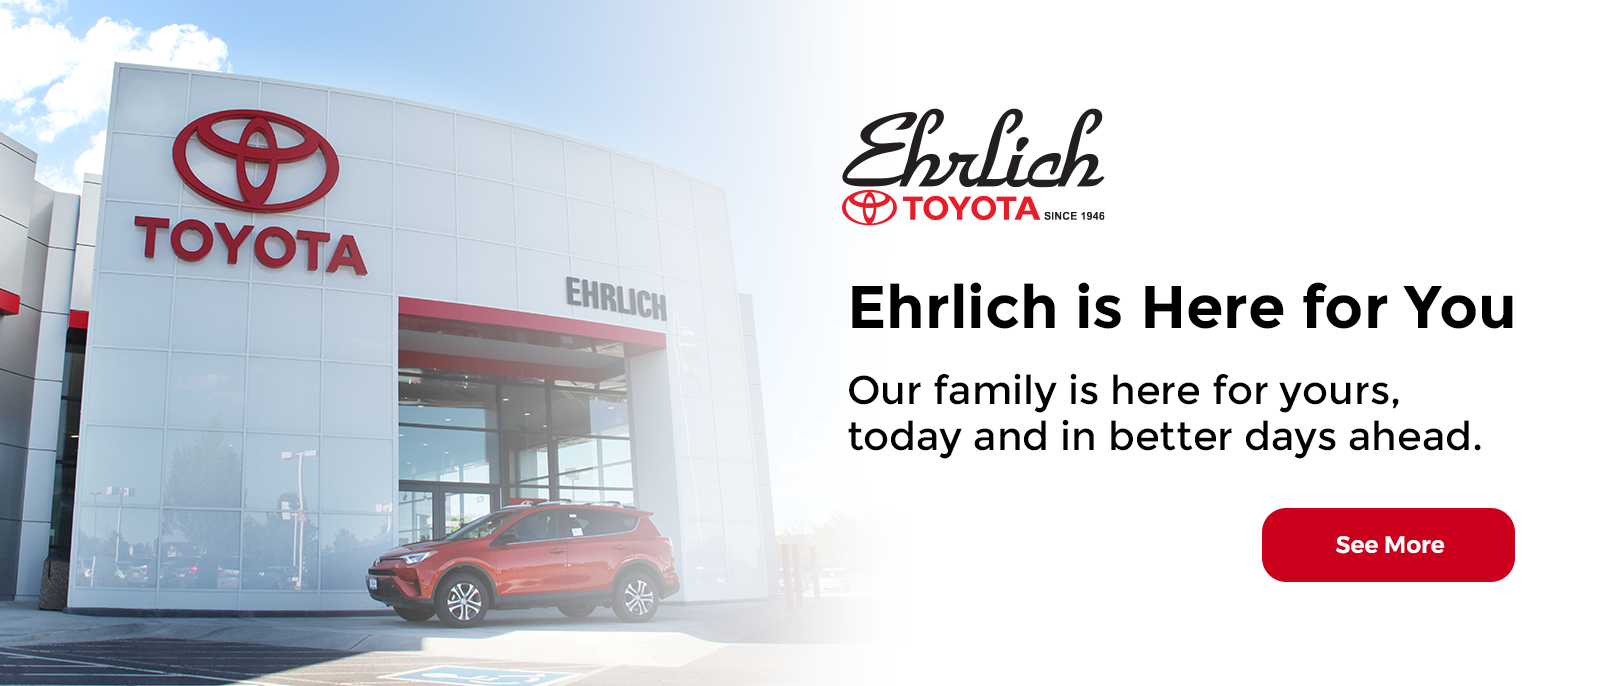 Ehrlich is Here for You